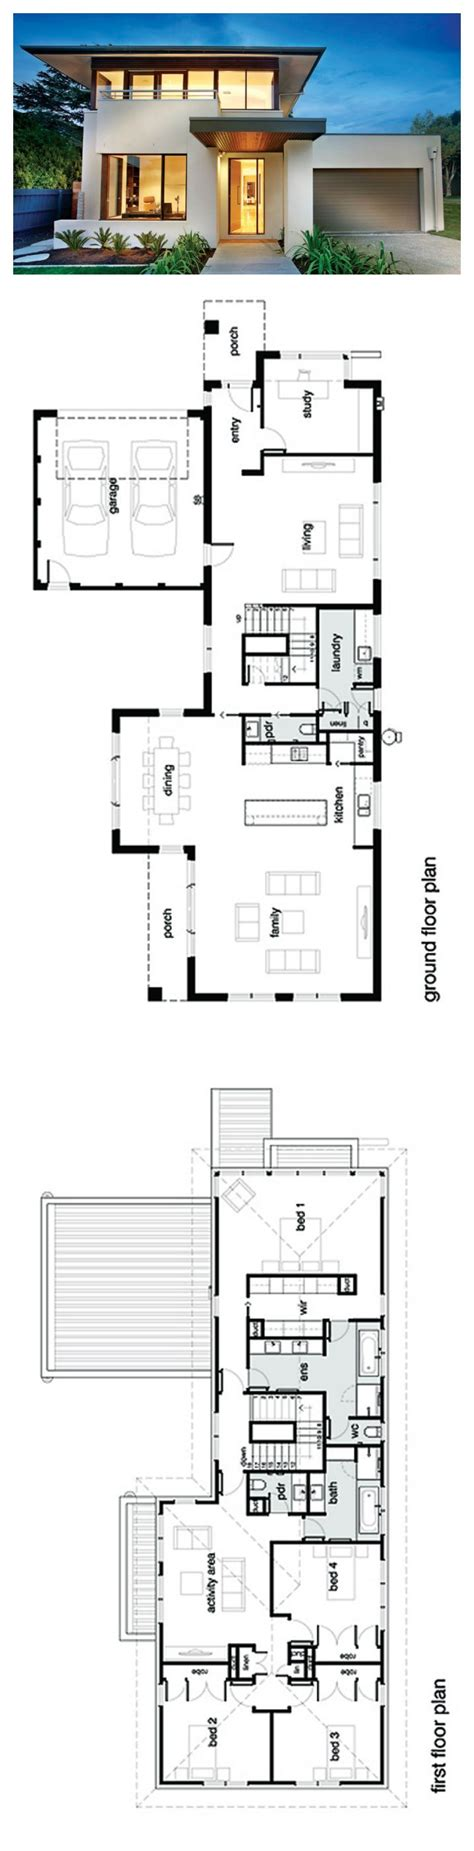 contemporary house floor plans the 25 best ideas about modern house plans on